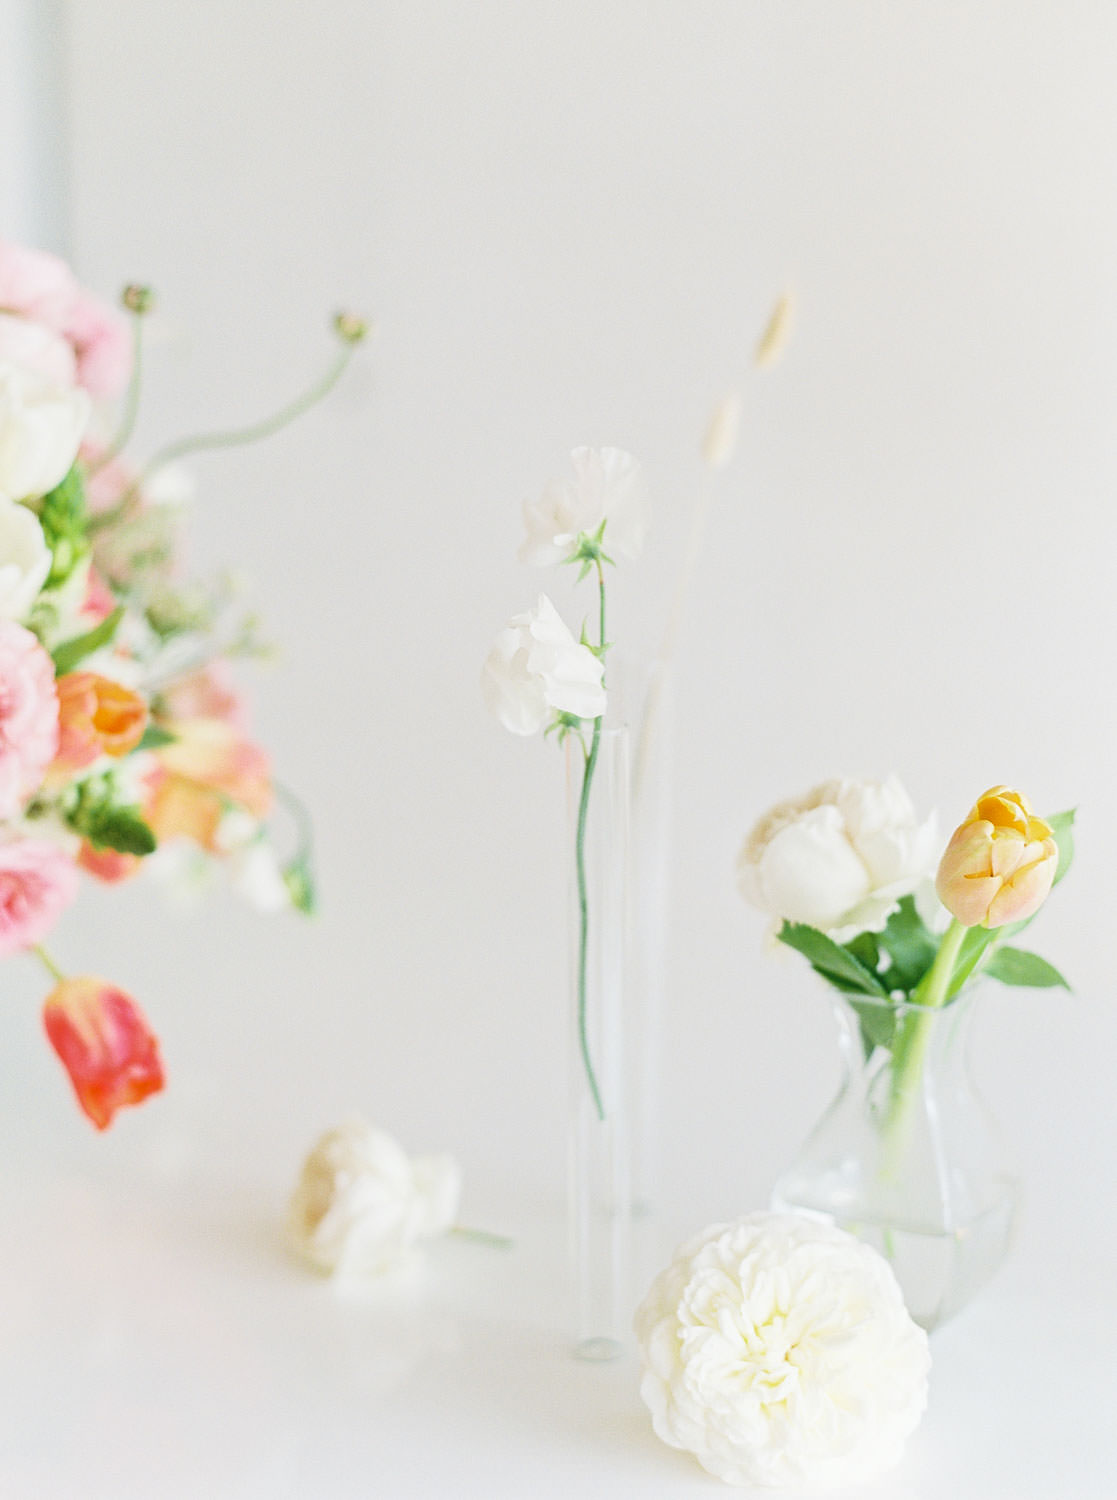 White table with Pink green white peach centerpiece on film, Romantic Colorful Floral Arrangements by Organic Flora, Cavin Elizabeth Photography